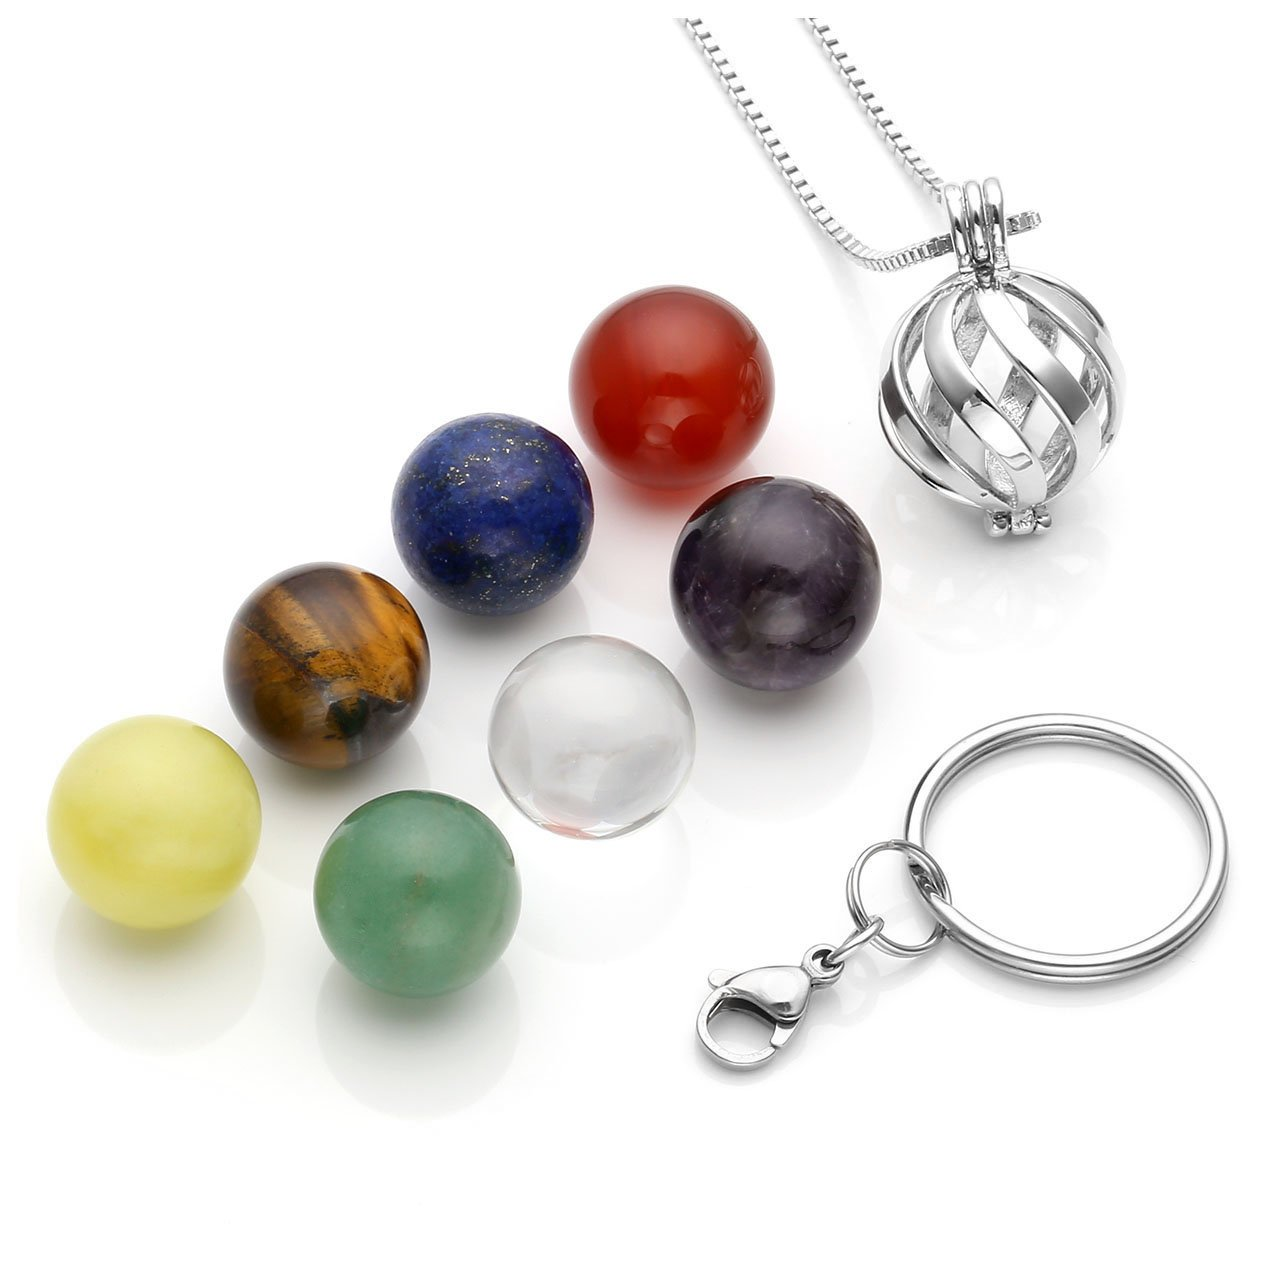 Top Plaza 7 Chakra Reiki Healing Crystals Natural Stone Balls Locket Pendant Necklace Keychian Fashion Unique Silver Stainless Steel Jewelry for Womens Men(Twisted Ball)